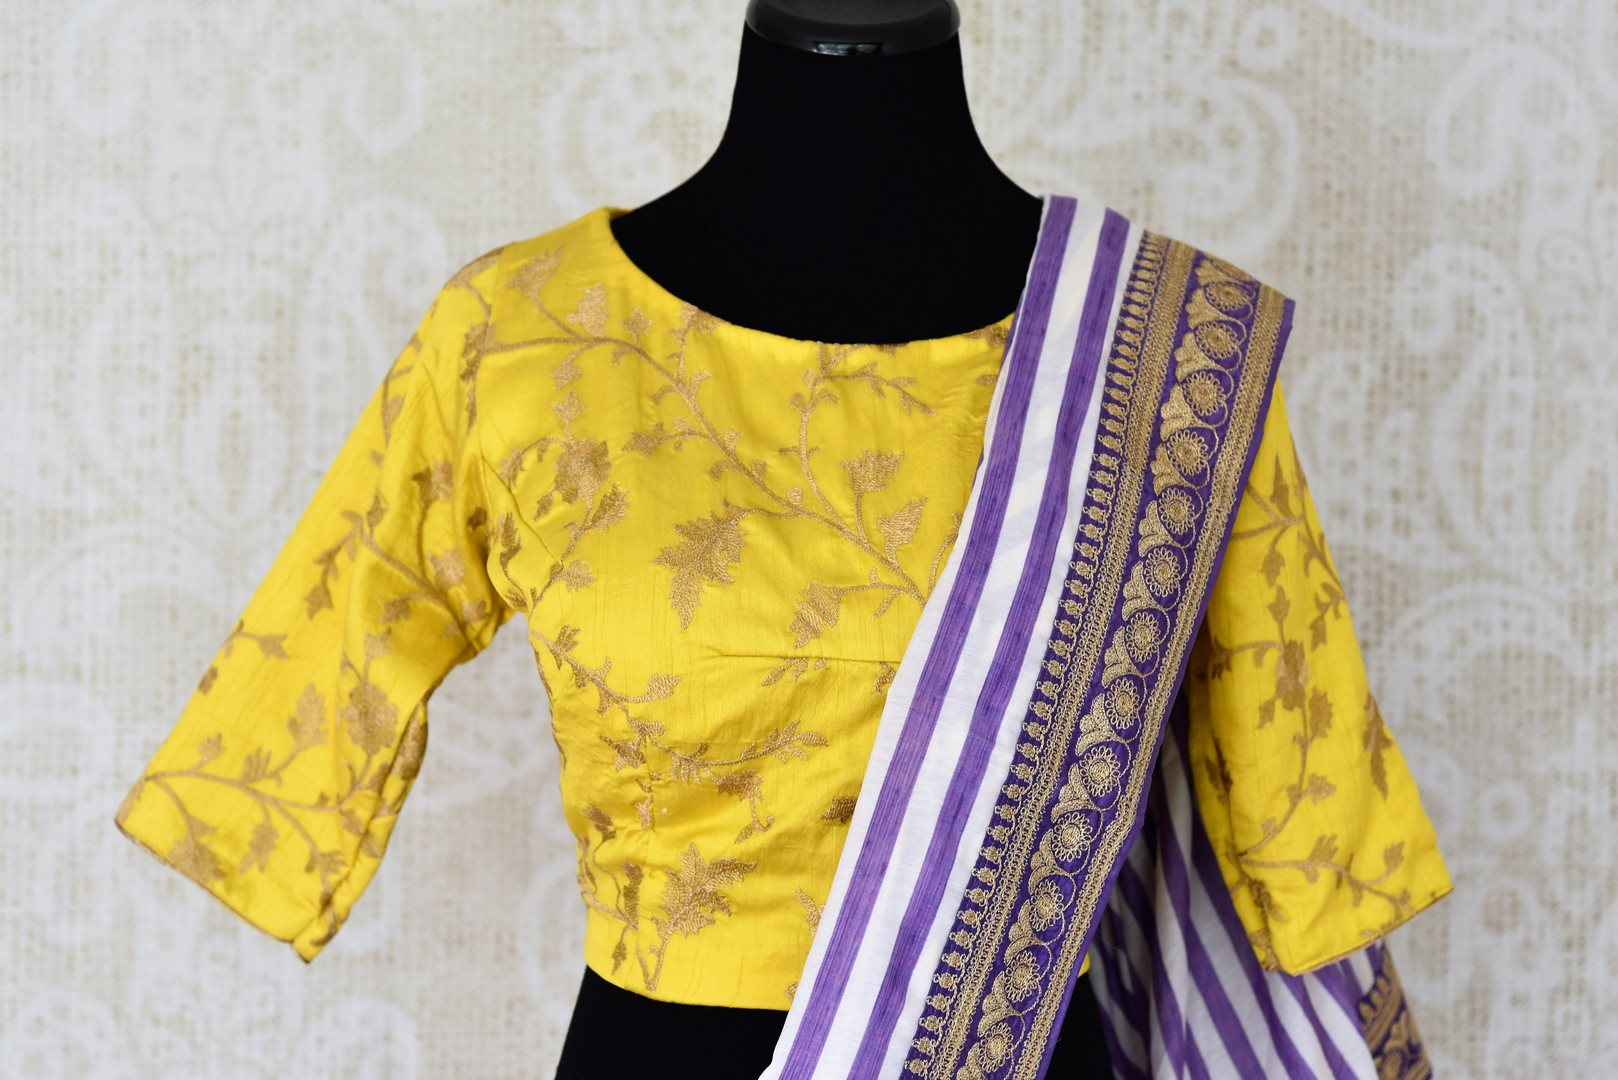 Buy purple and white stripes embroidered silk saree with blouse online in USA. Shop exclusive Indian designer saris, concept sarees, saree sets in USA at Pure Elegance clothing store. Explore a range of traditional Indian women clothing also available at our online store. Shop now.-blouse pallu